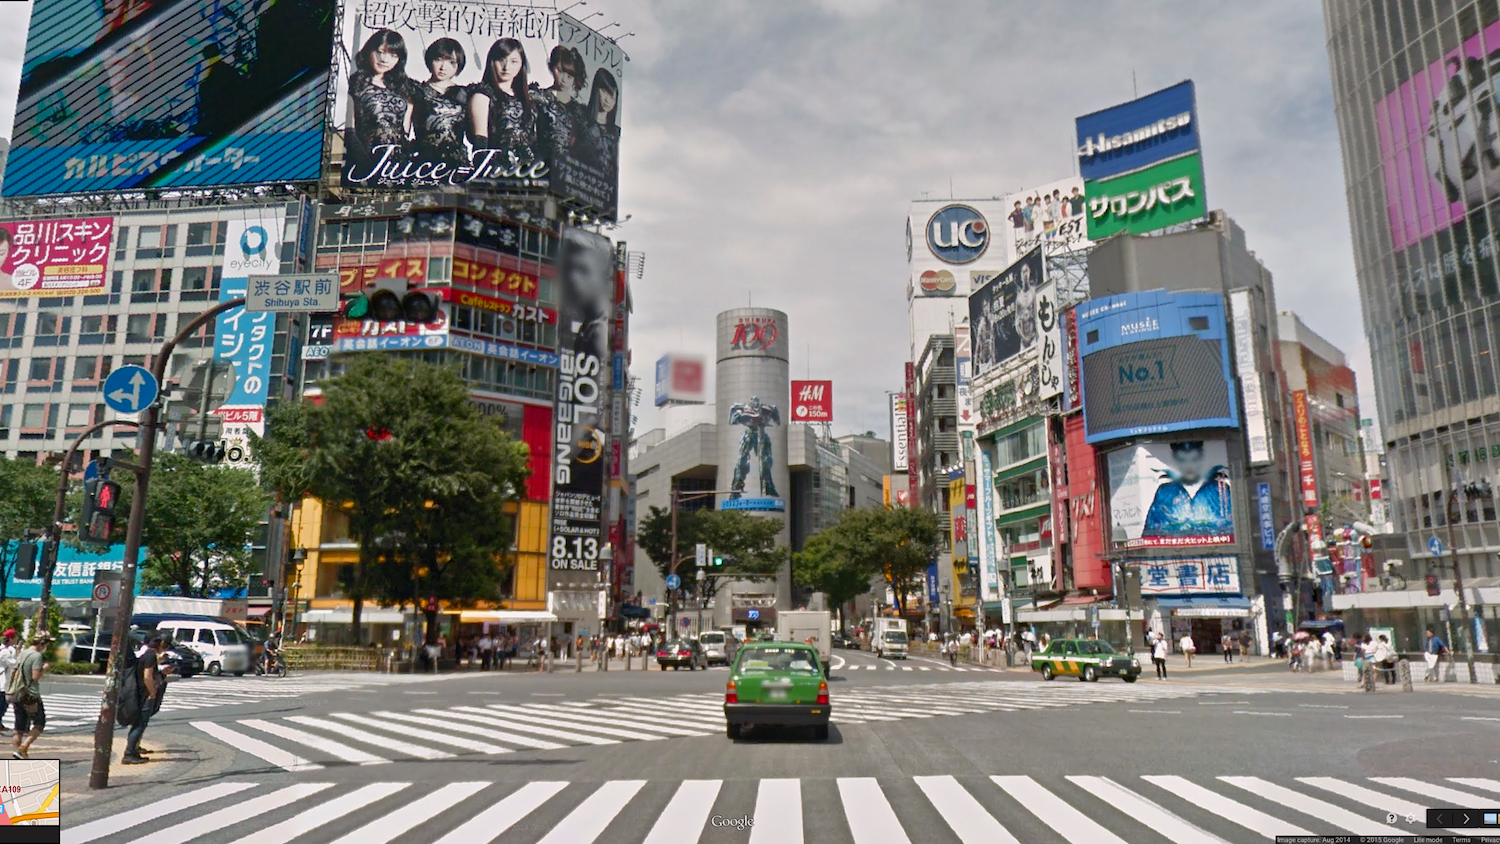 The real one is the one with the giant robot on the building in the middle. Sources  here  and  here  .